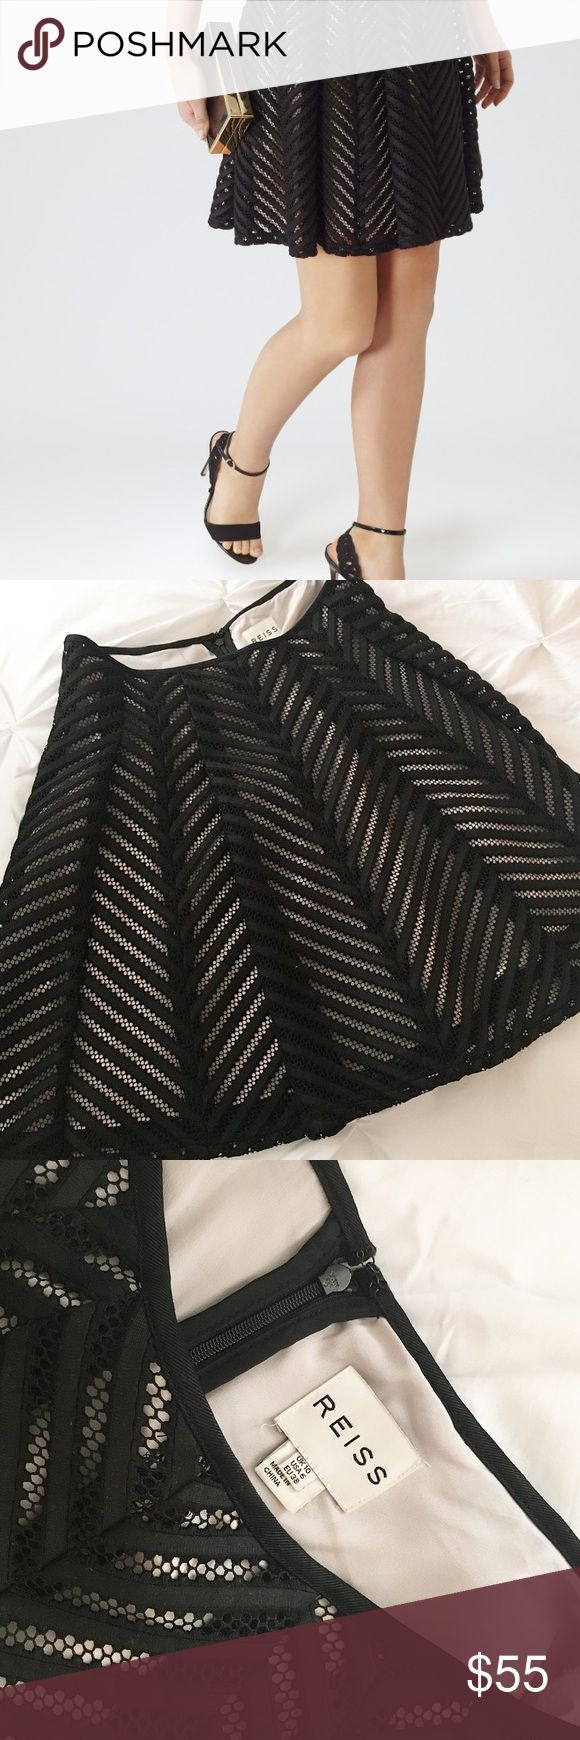 Reiss Anra Skirt Reiss Anra skirt size US6. This is black with a pale nude slip underneath and is perfect for this time of year and can be worn all throughout the spring! Reiss Skirts Midi